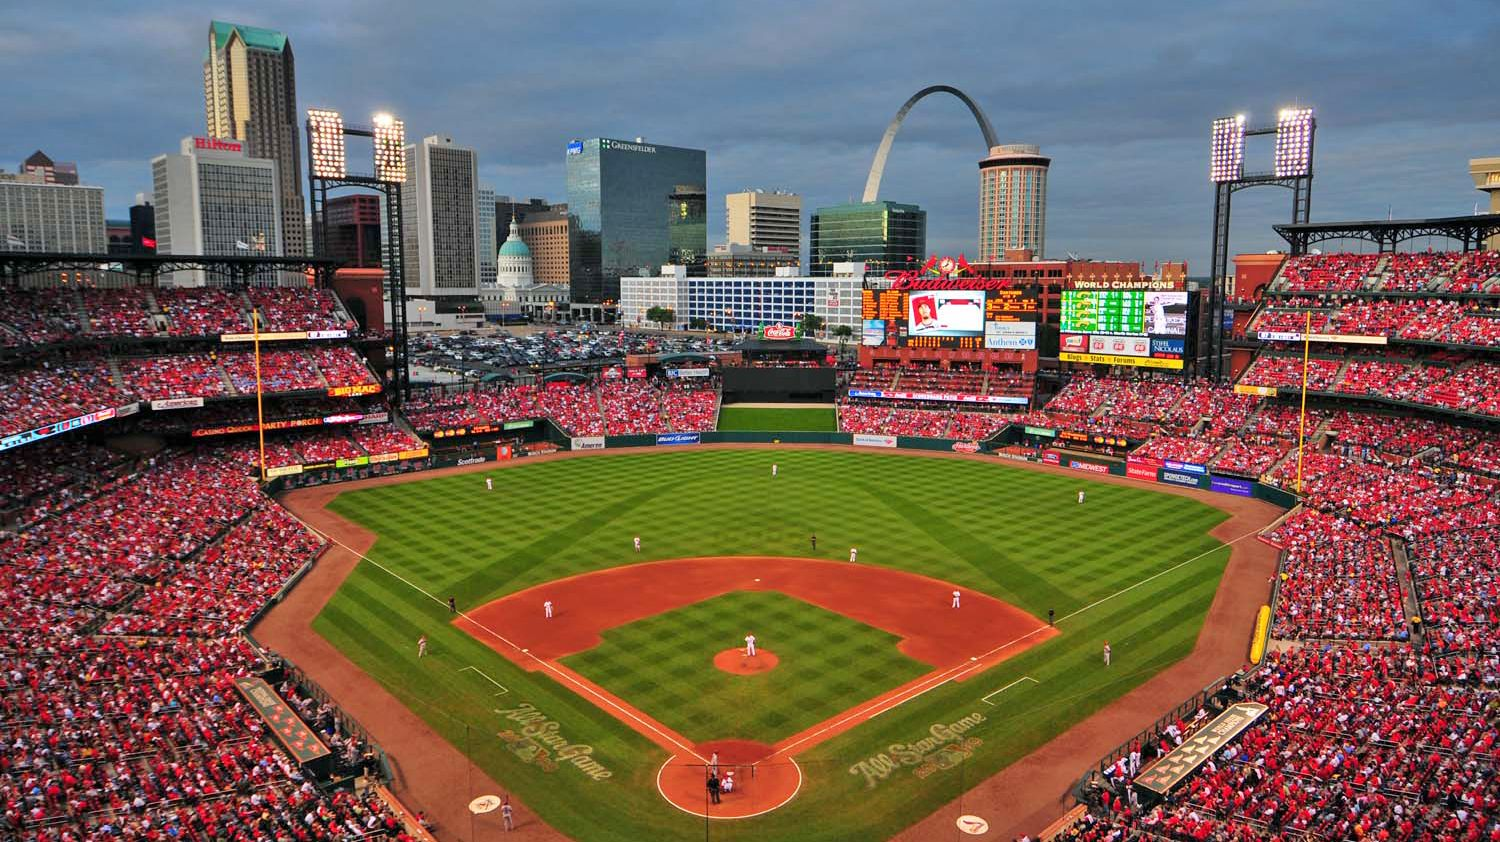 St Louis Busch Stadium Seat Map And Venue Information Busch Stadium Baseball Stadium Baseball